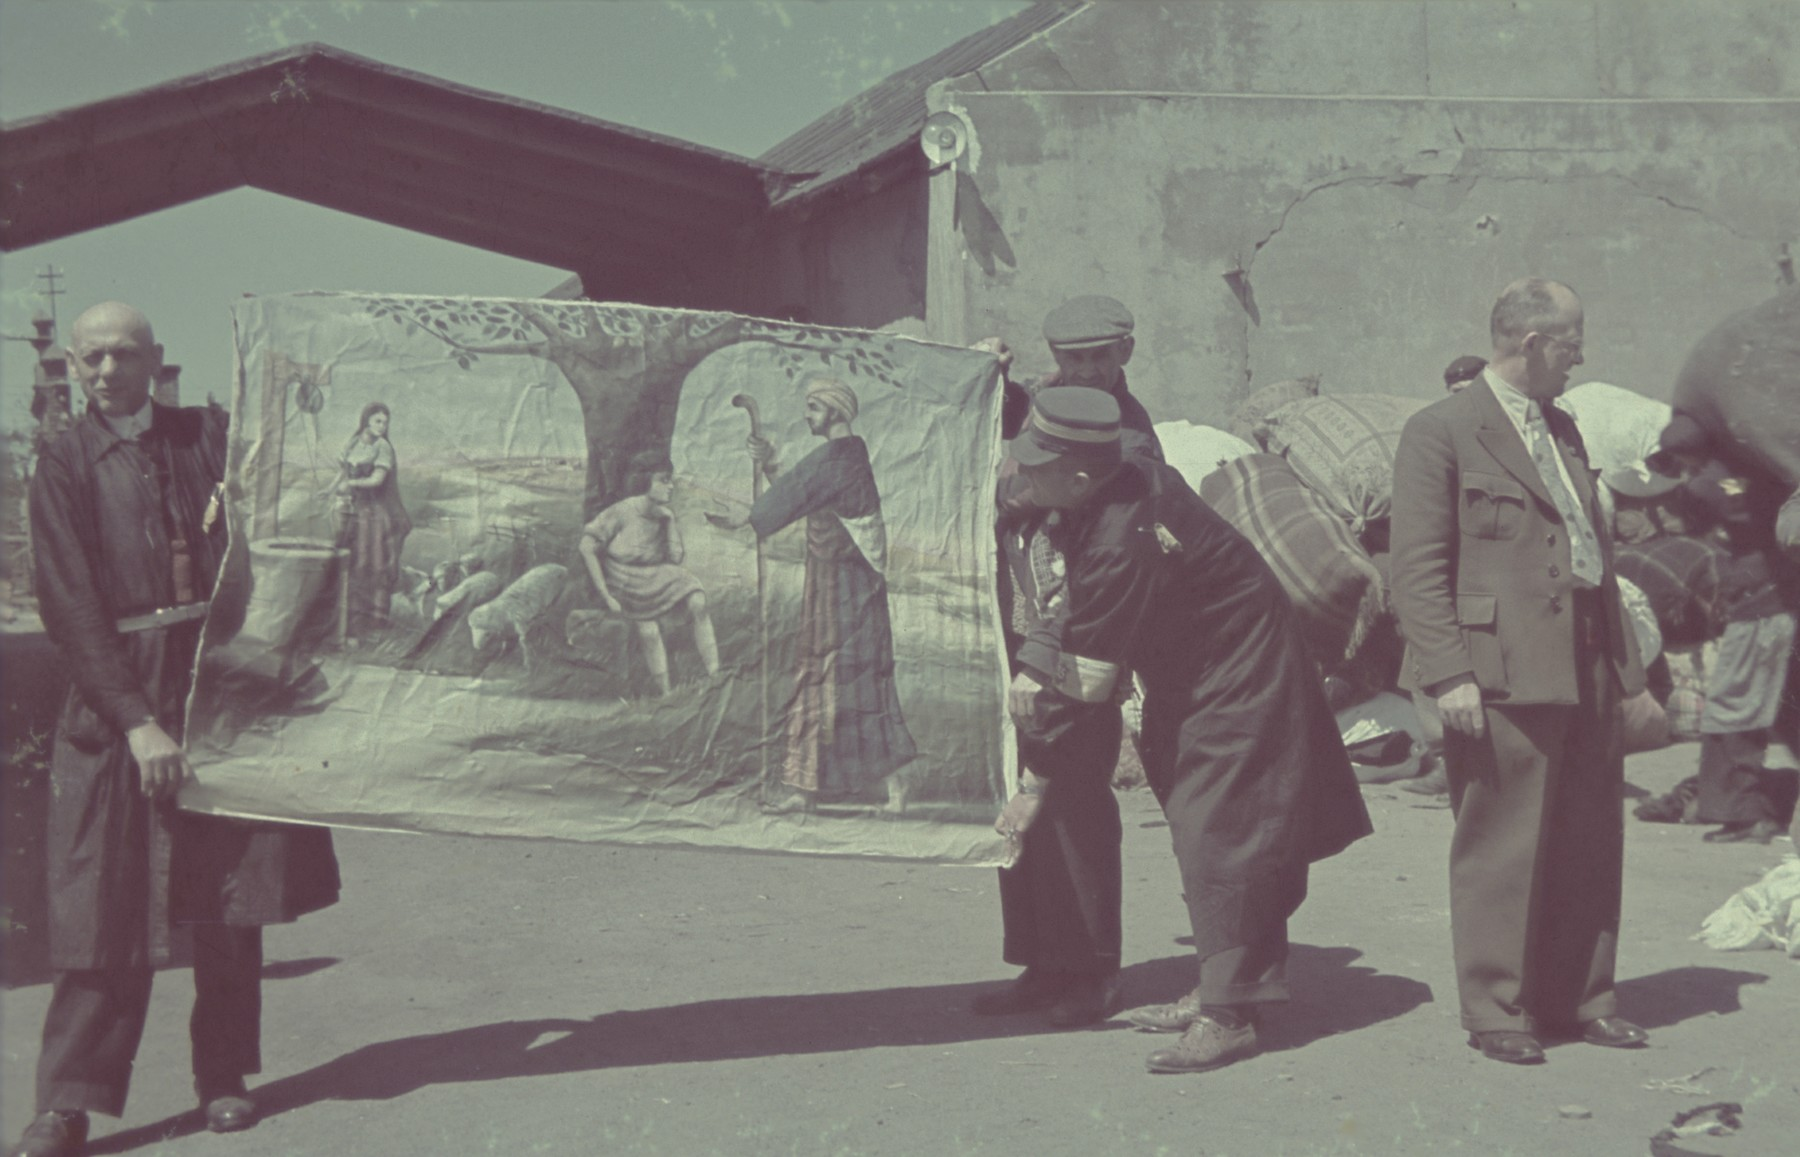 """Jewish laborers display a confiscated work of art that was brought to the Pabianice labor camp/storage facility.  Original German caption: """"Pabianice, Juedische Kunst"""" (Jewish art), #33."""